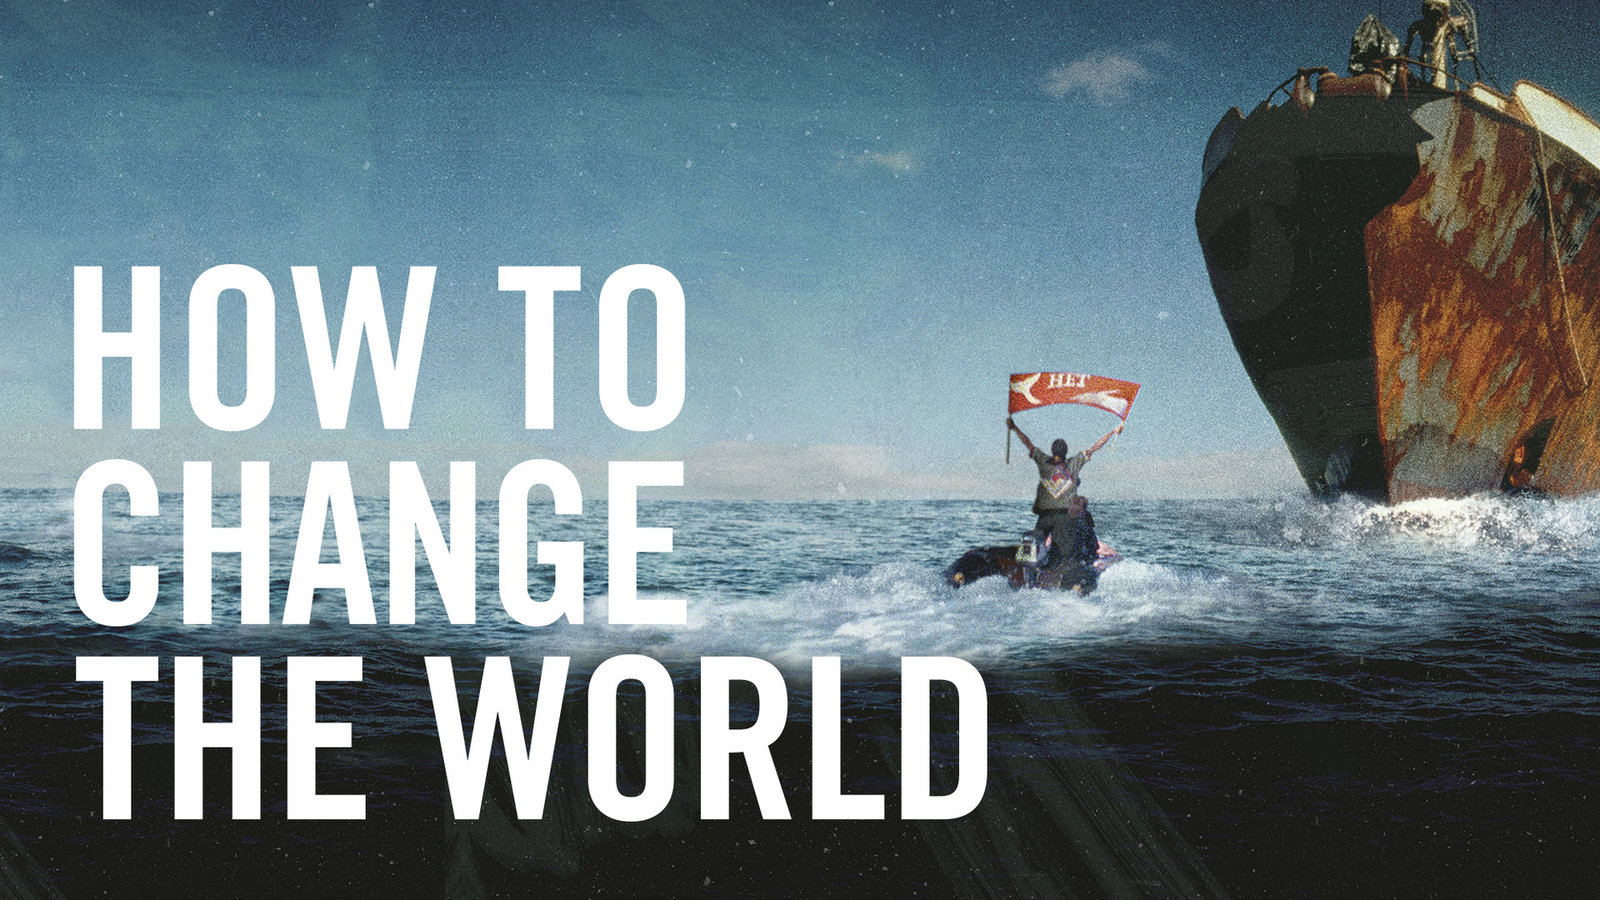 How to Change the World - The Founding of Greenpeace